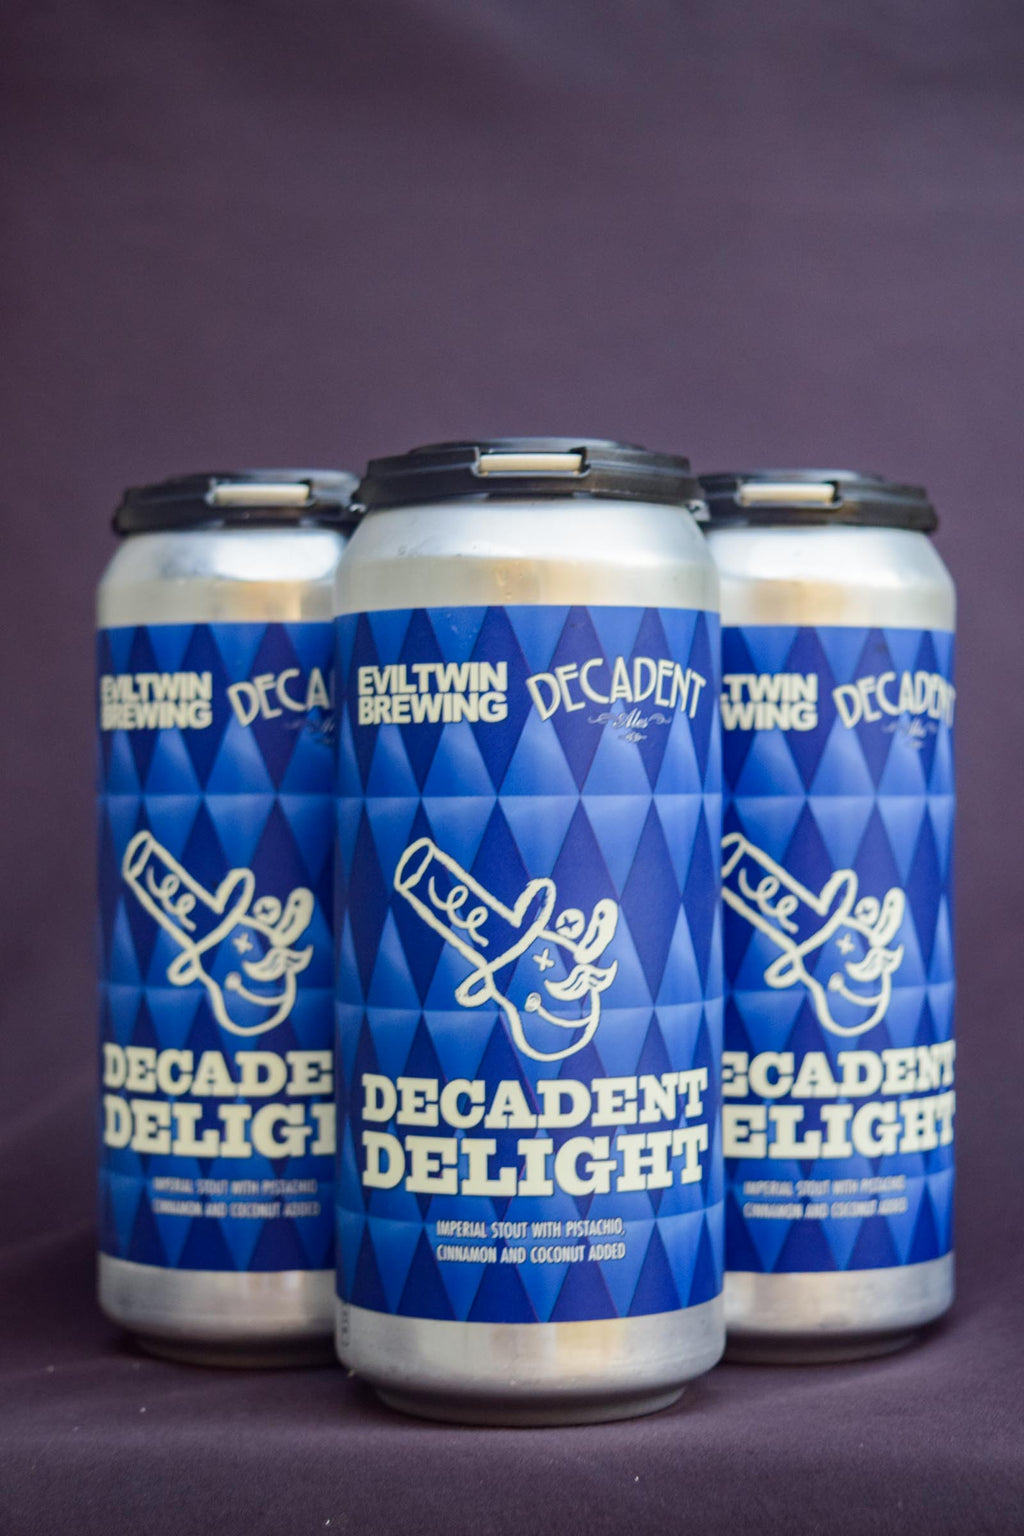 Buy Evil Twin X Decadent Ales Decadent Delight Imperial Stout Online